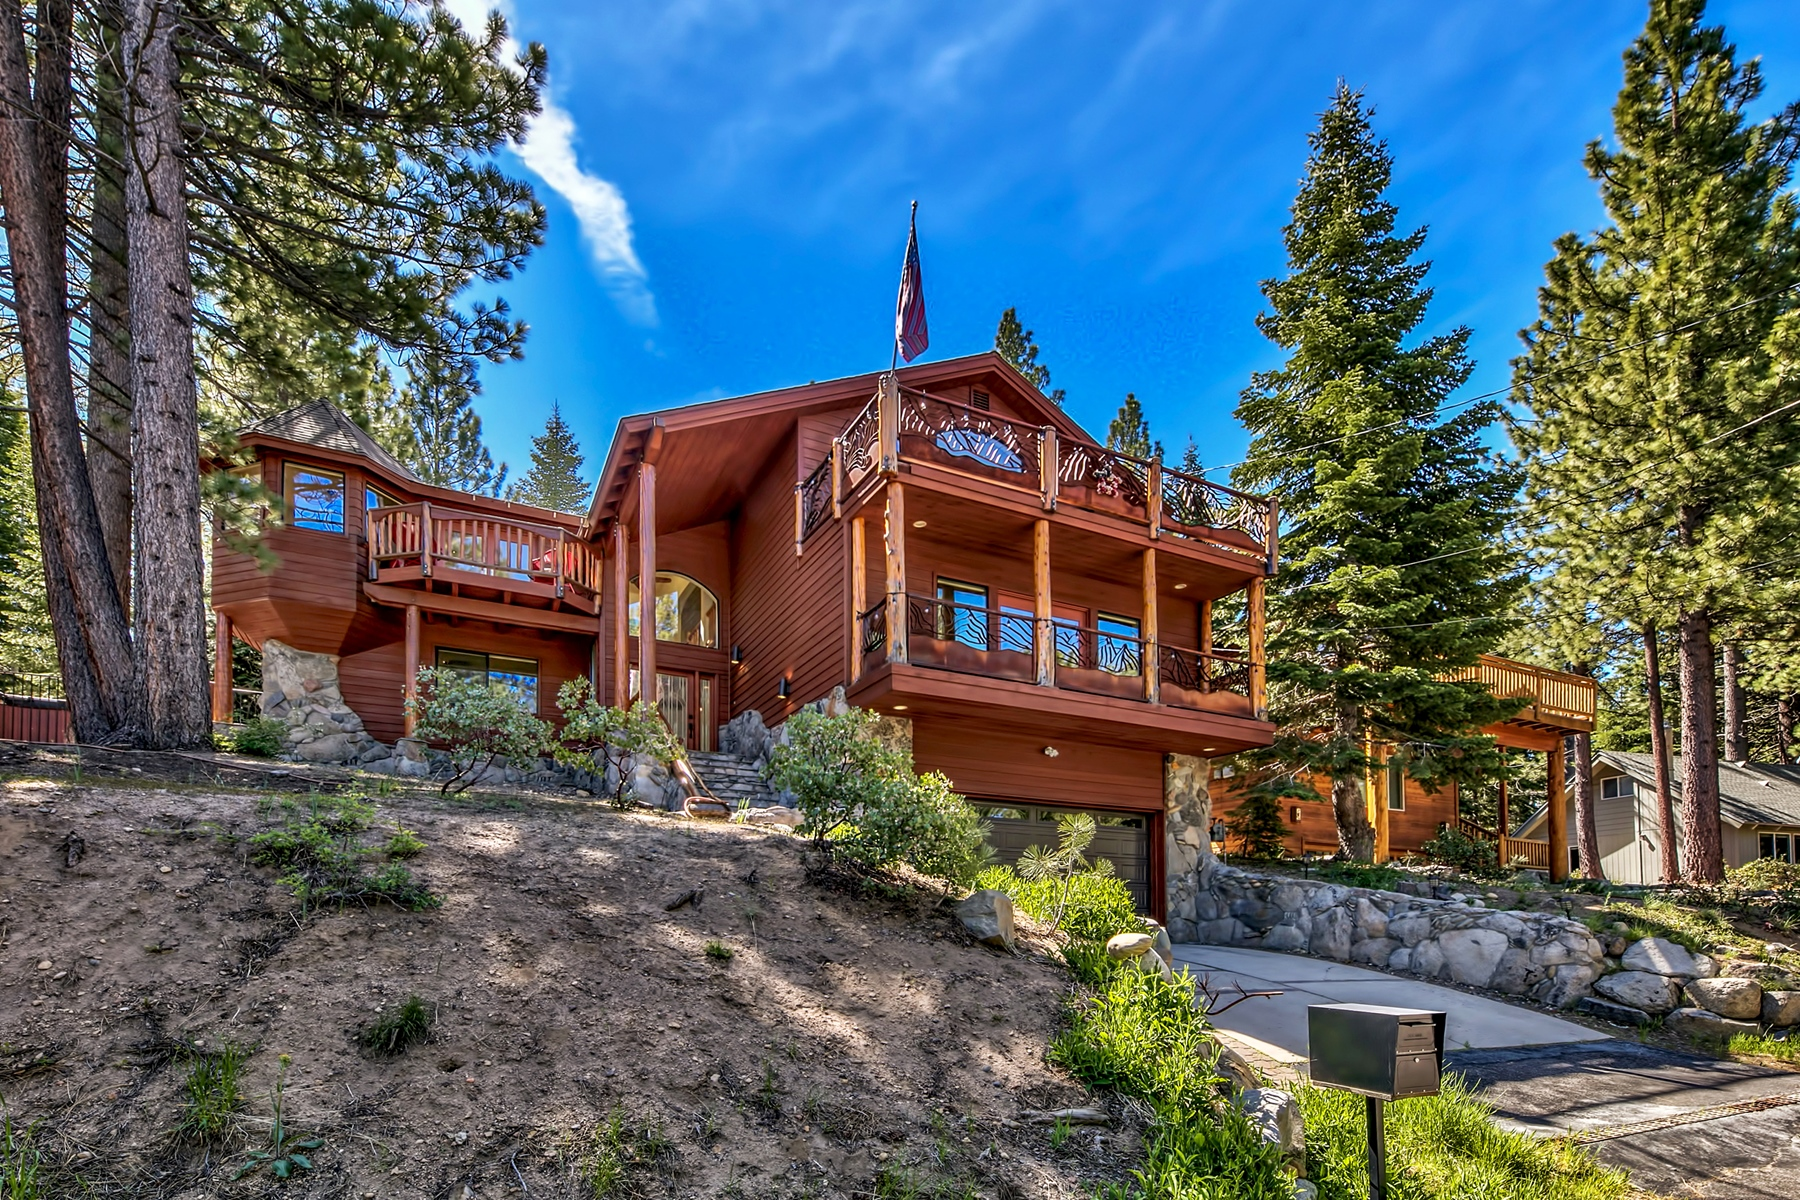 Property for Active at 1461 Skyline Drive, South Lake Tahoe, CA 96150 1461 Skyline Drive South Lake Tahoe, California 96150 United States